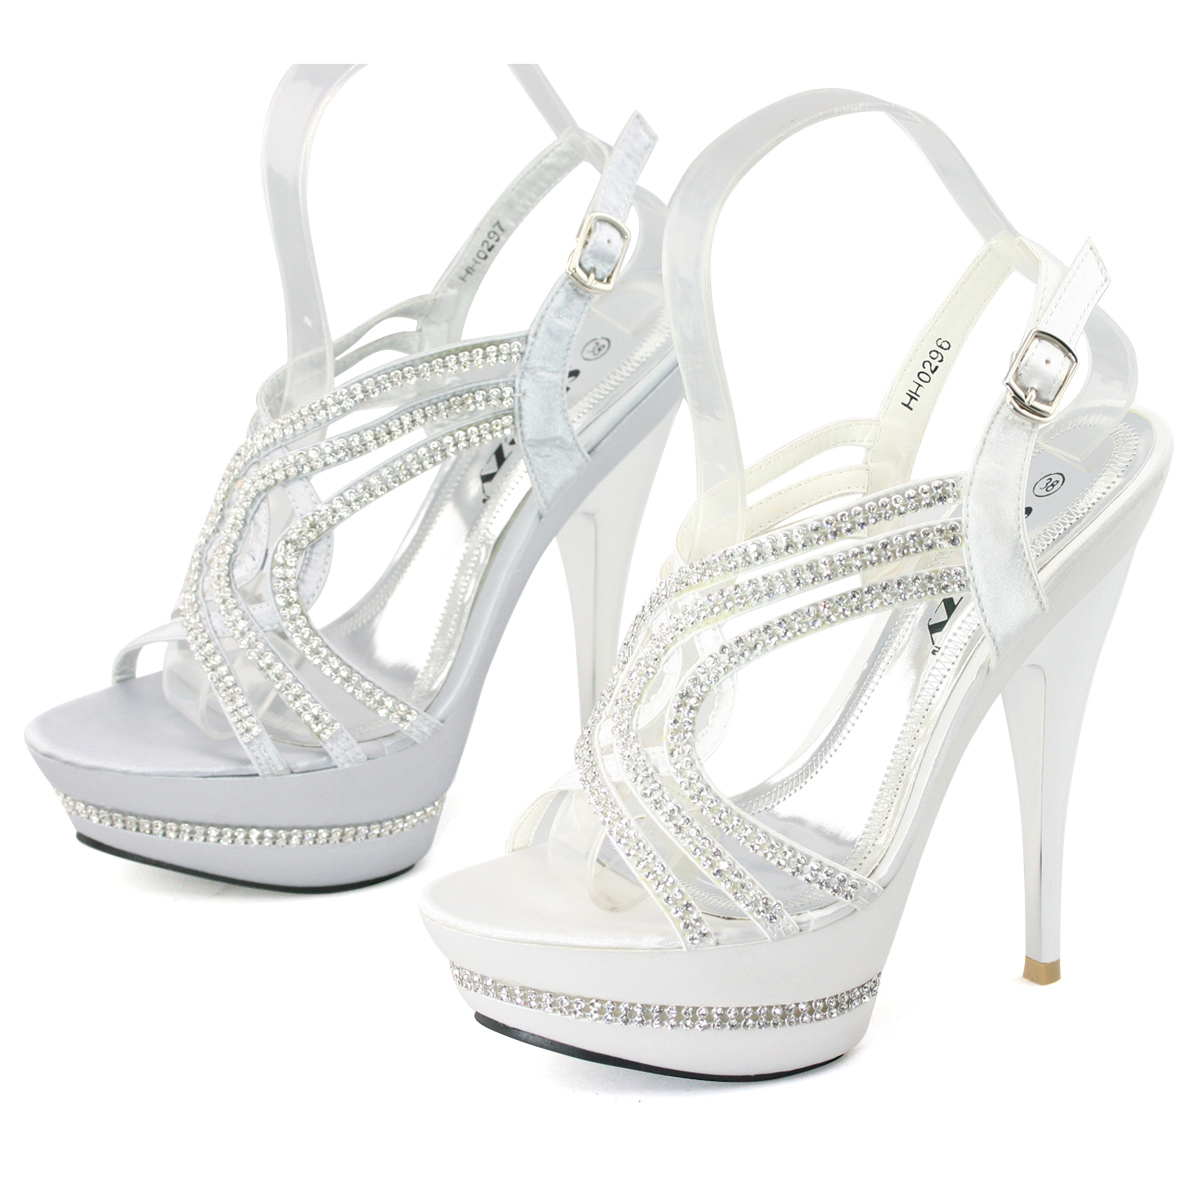 New womens diamante strappy high platform  sandal wedding evening shoes size 3-8